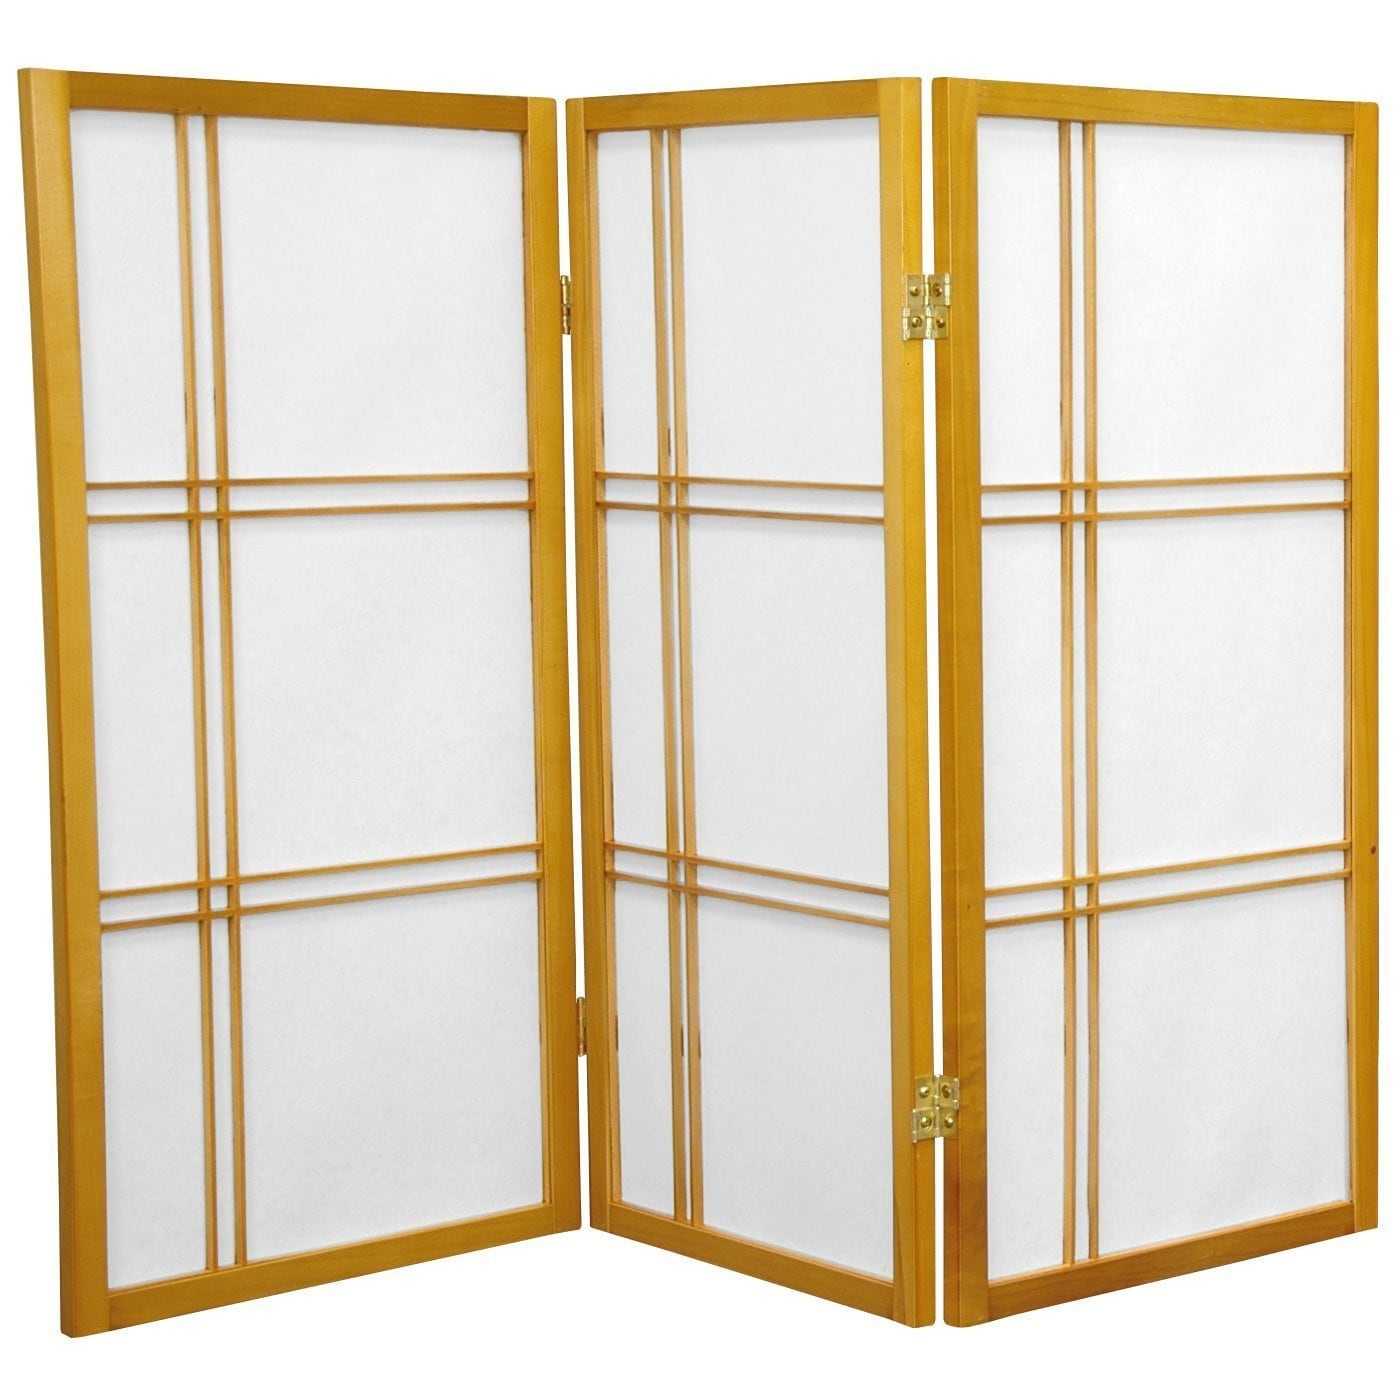 Handmade Wood and Rice Paper Double Cross 3-foot Shoji Screen (China) -  Free Shipping Today - Overstock.com - 11464544